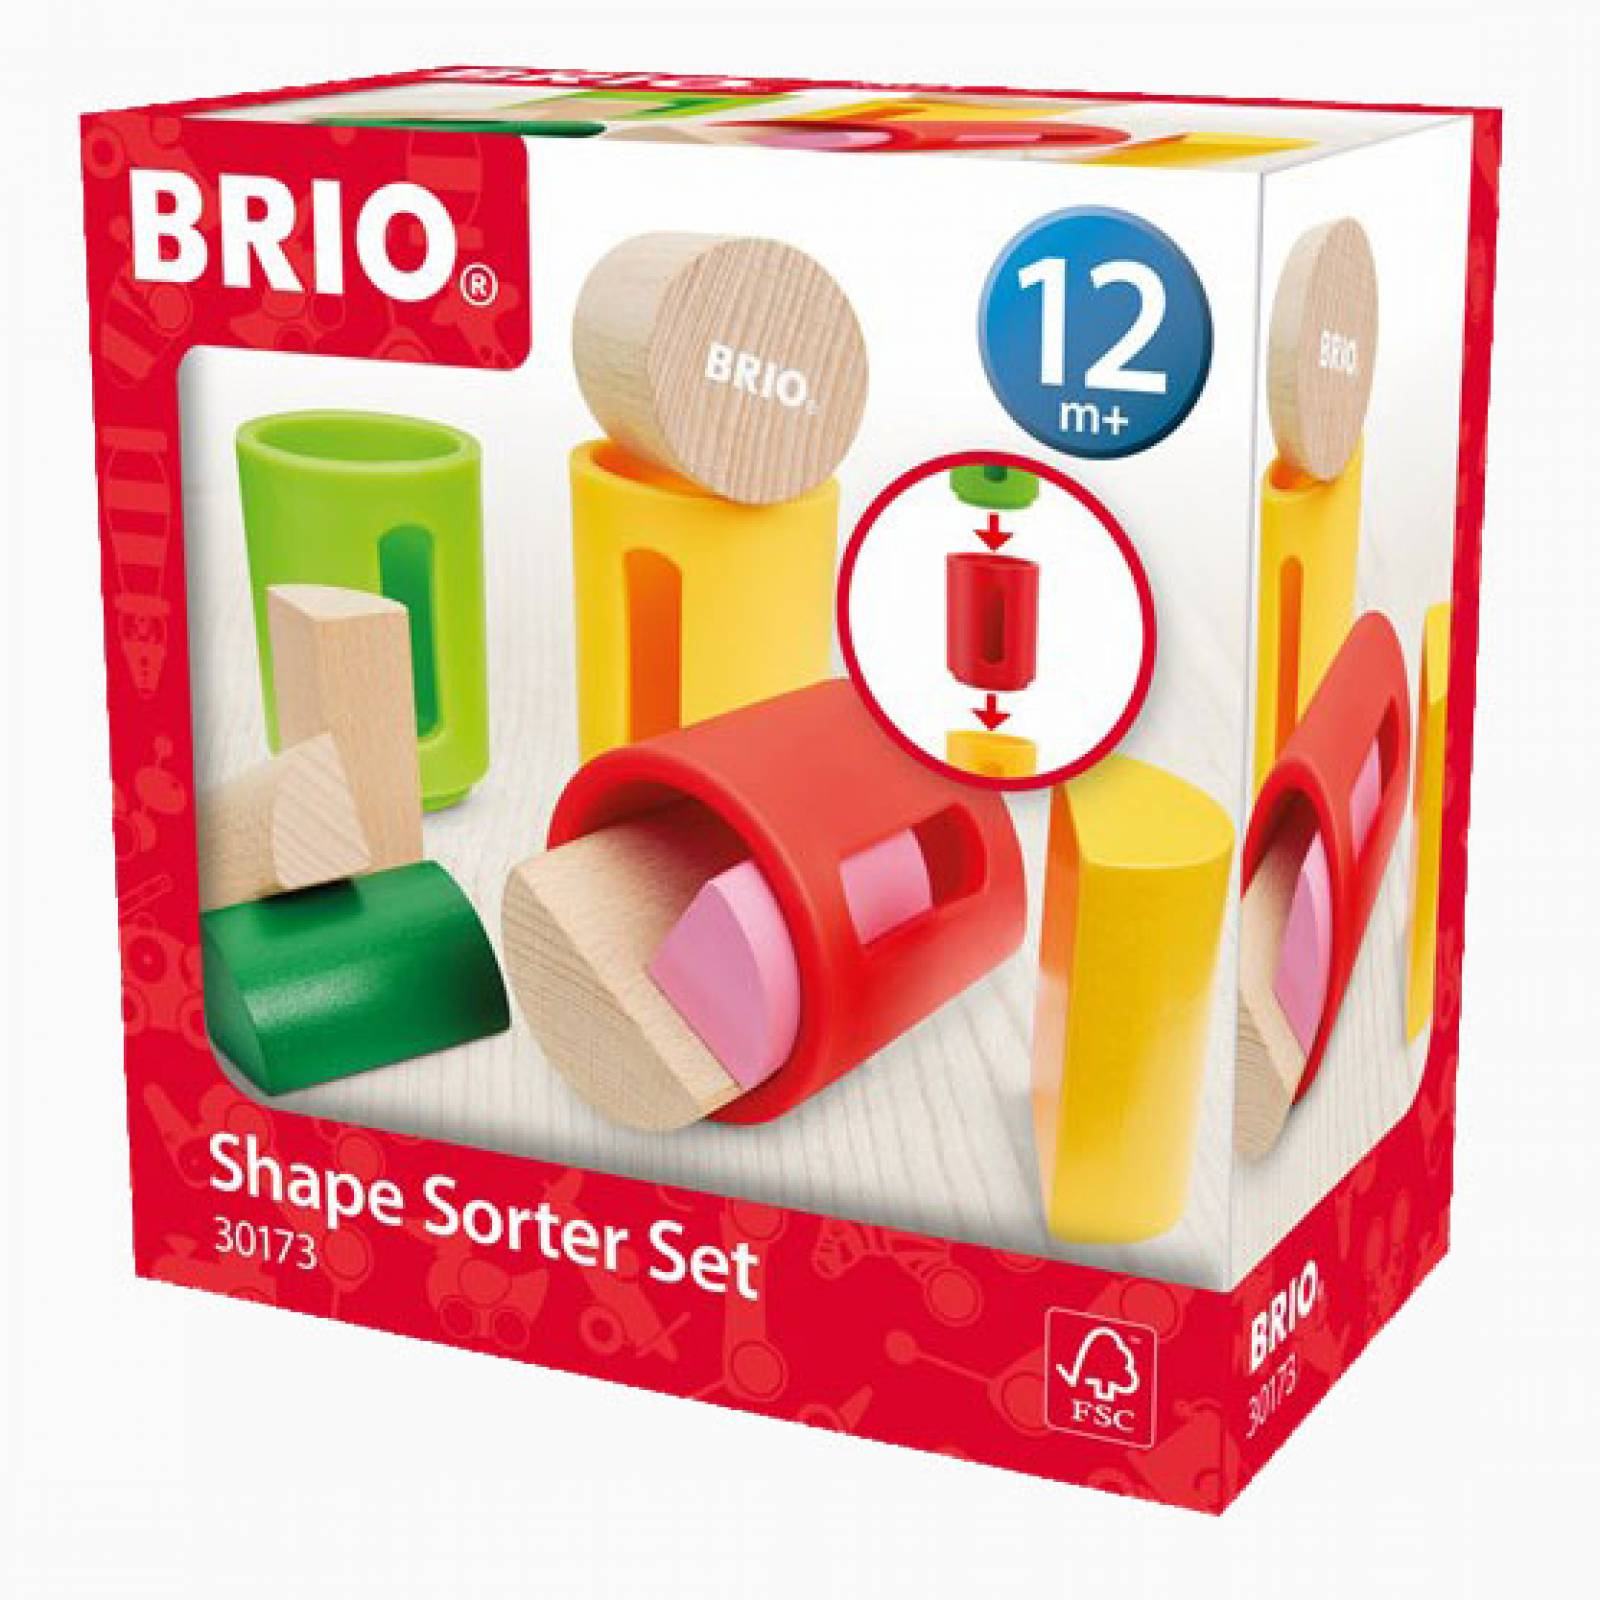 BRIO® Shape Sorter Set 1+ thumbnails